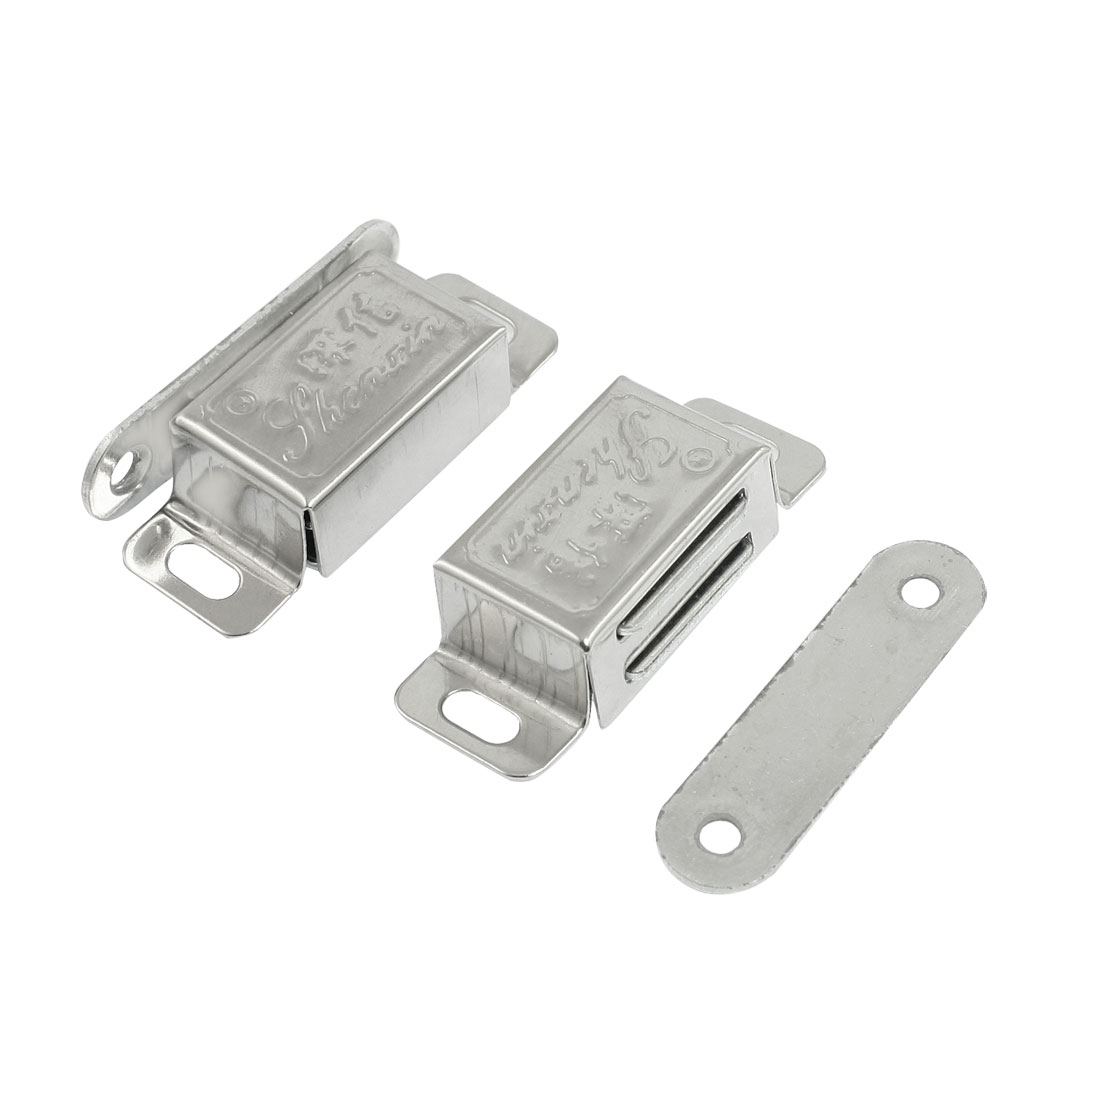 2 Pcs Stainless Steel Silver Tone Cupboard Door Magnetic Catch Latch 2""